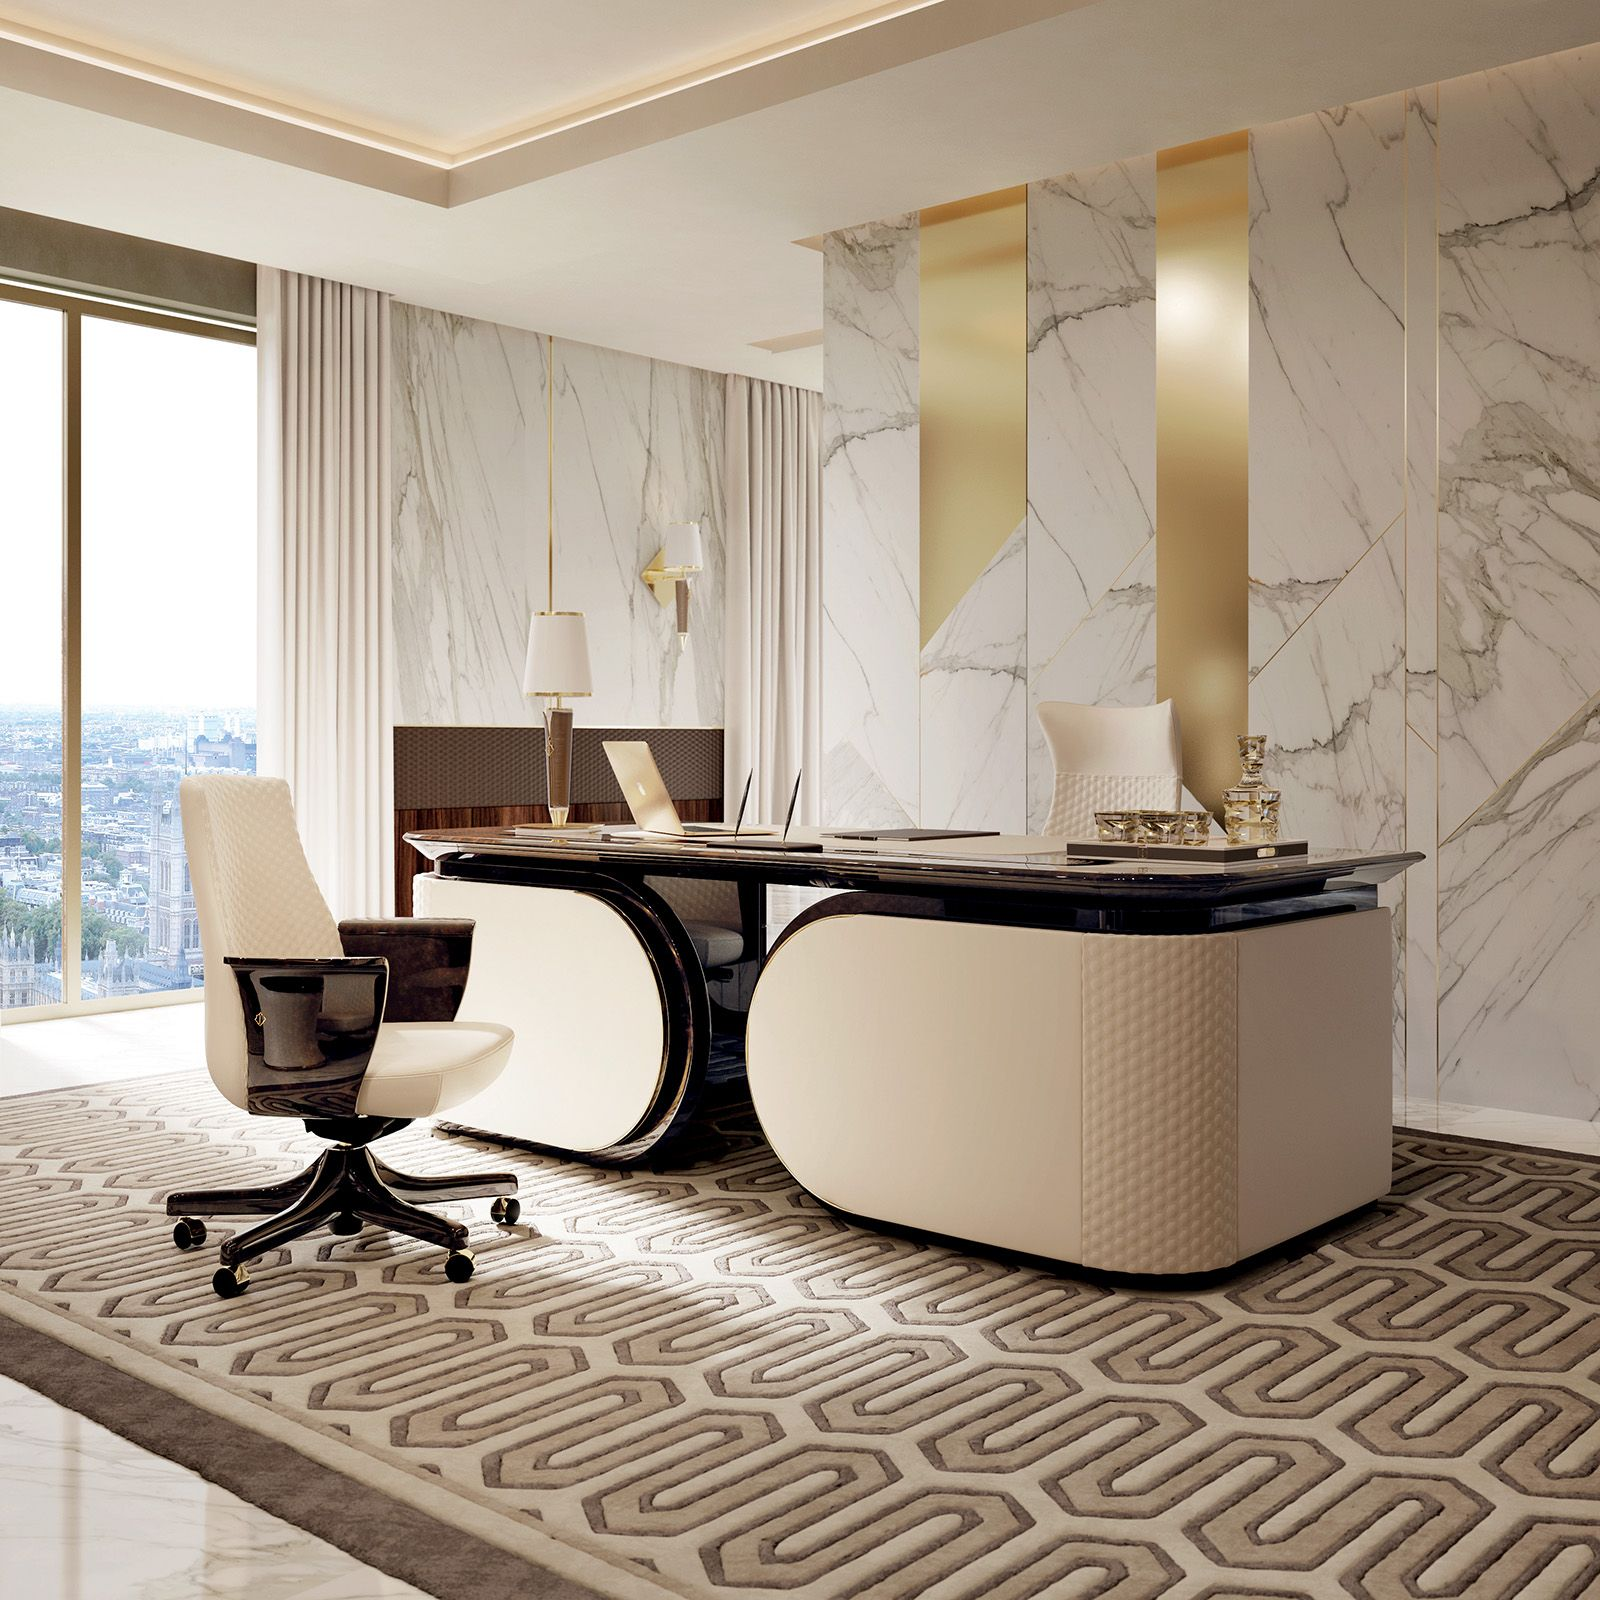 Vogue collection italian luxury office desk for Office interior design pictures